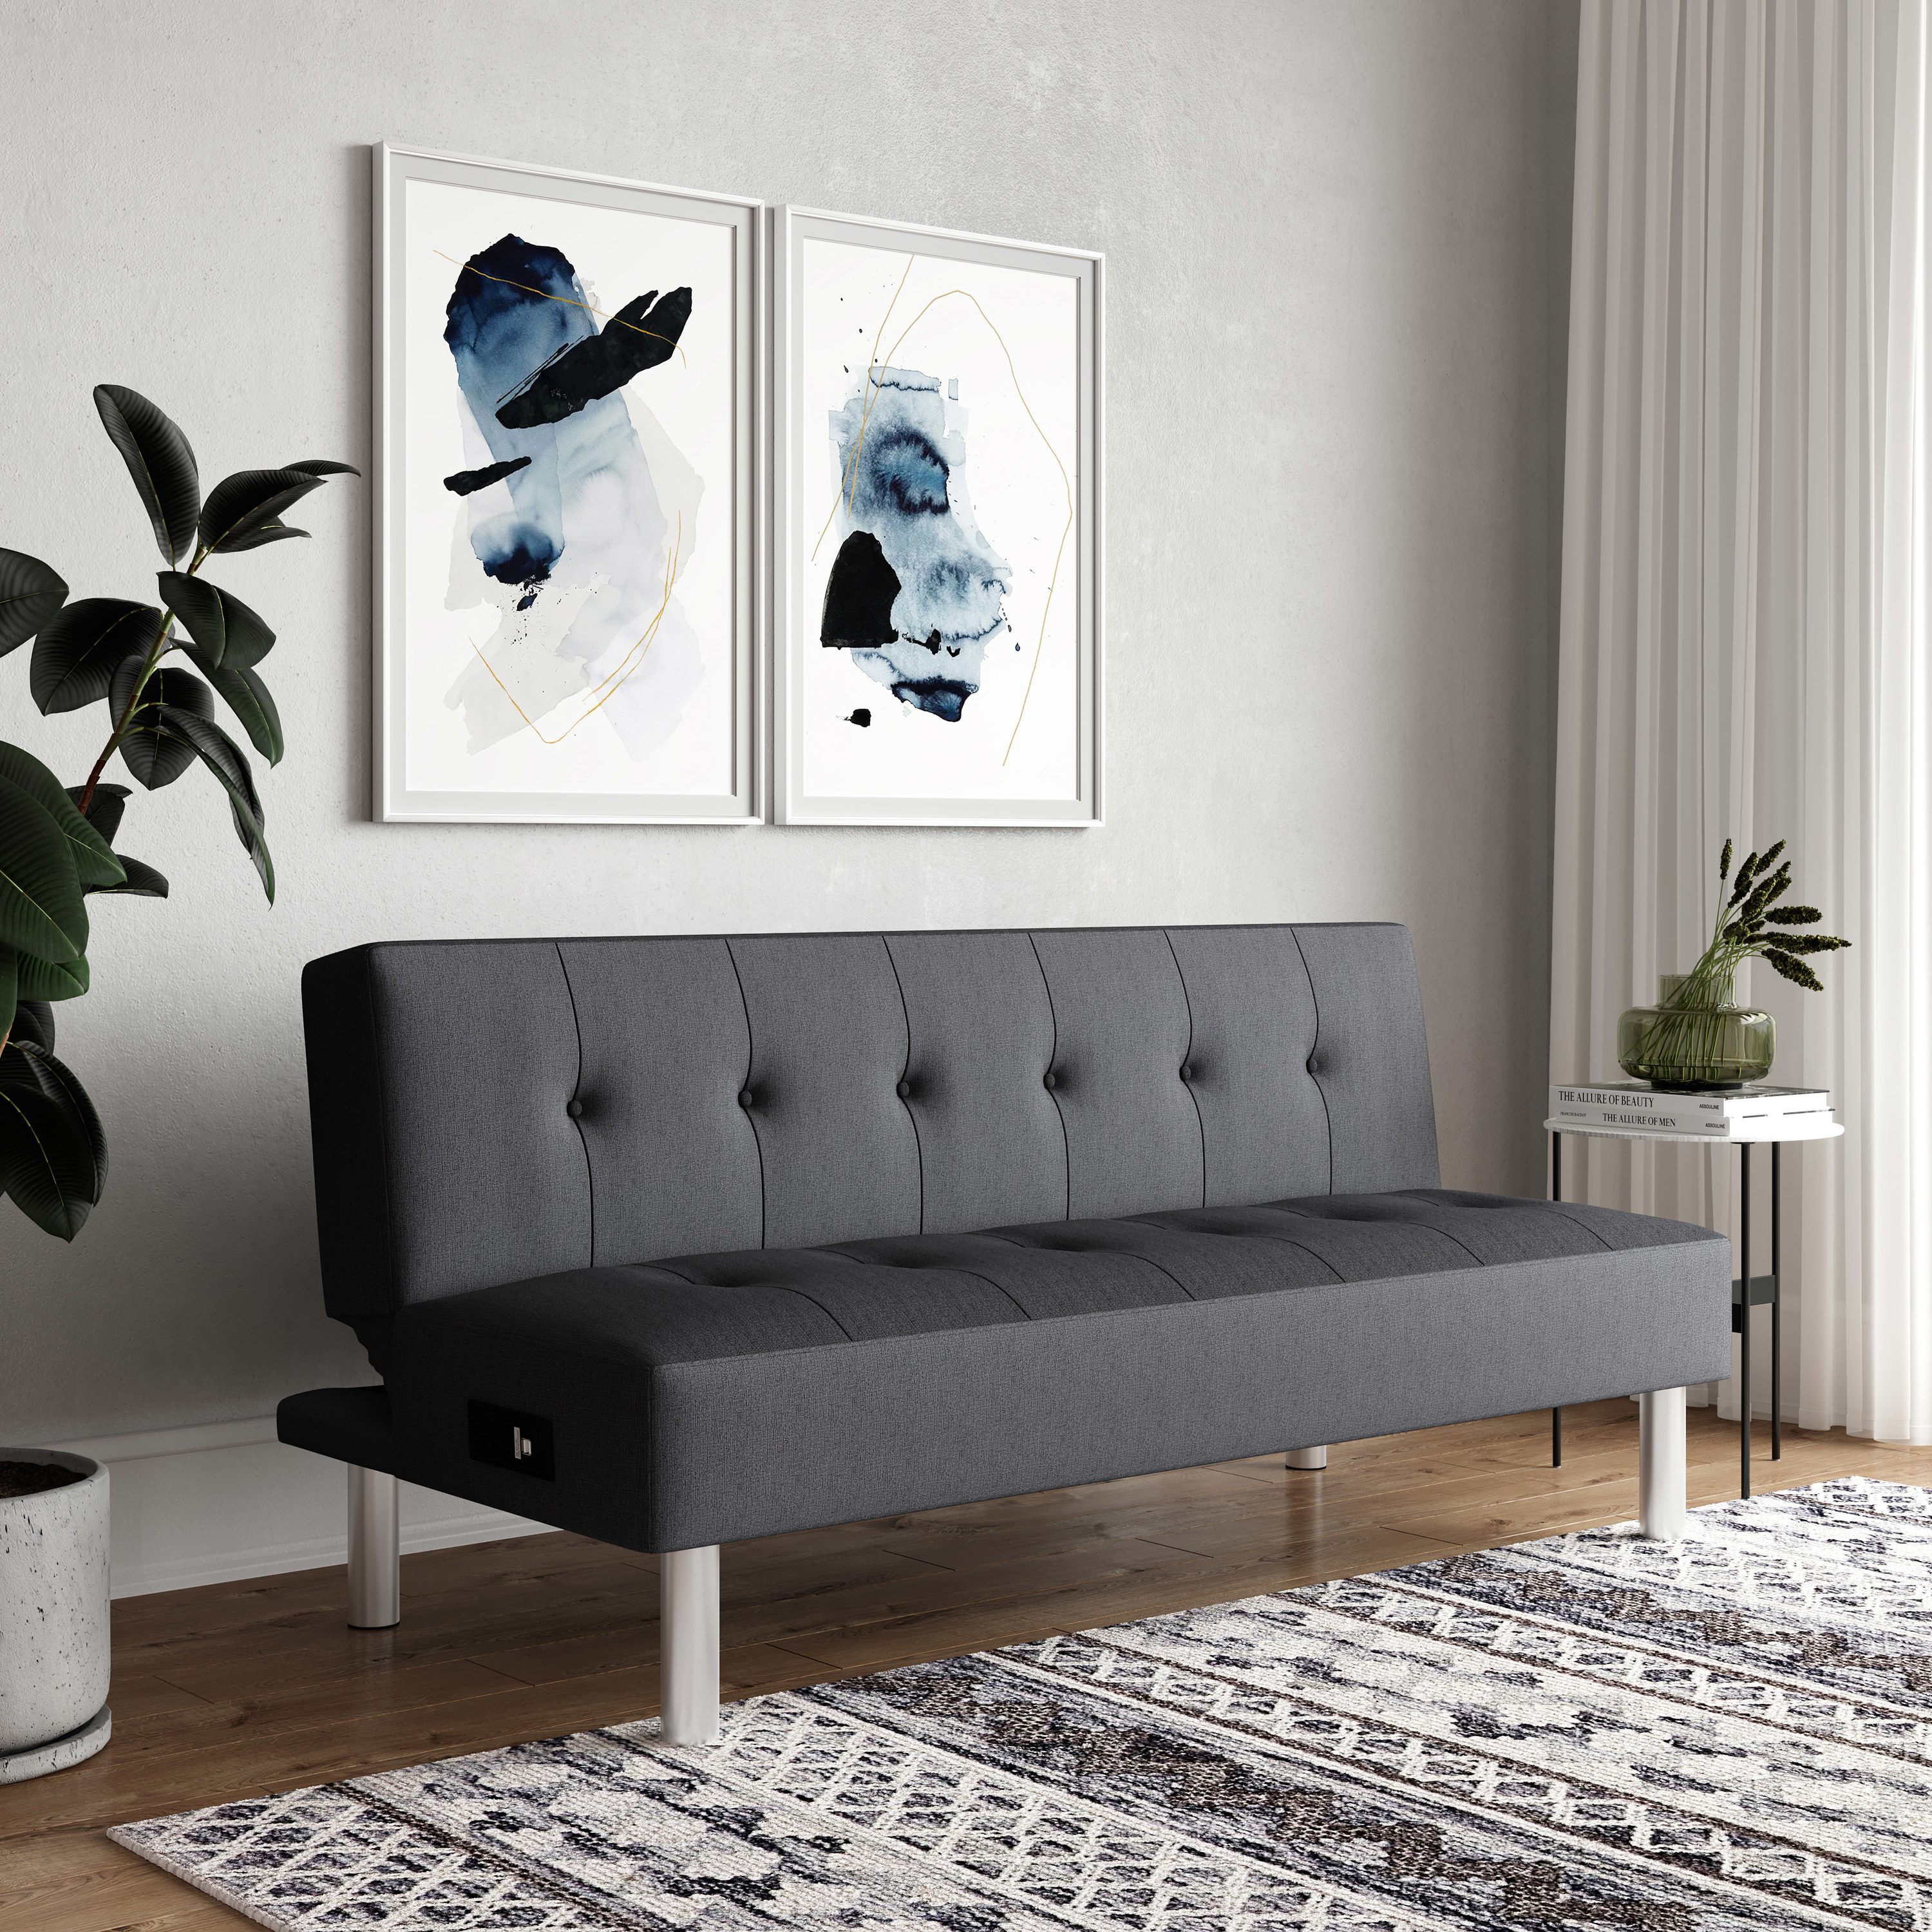 A grey couch with a USB ports